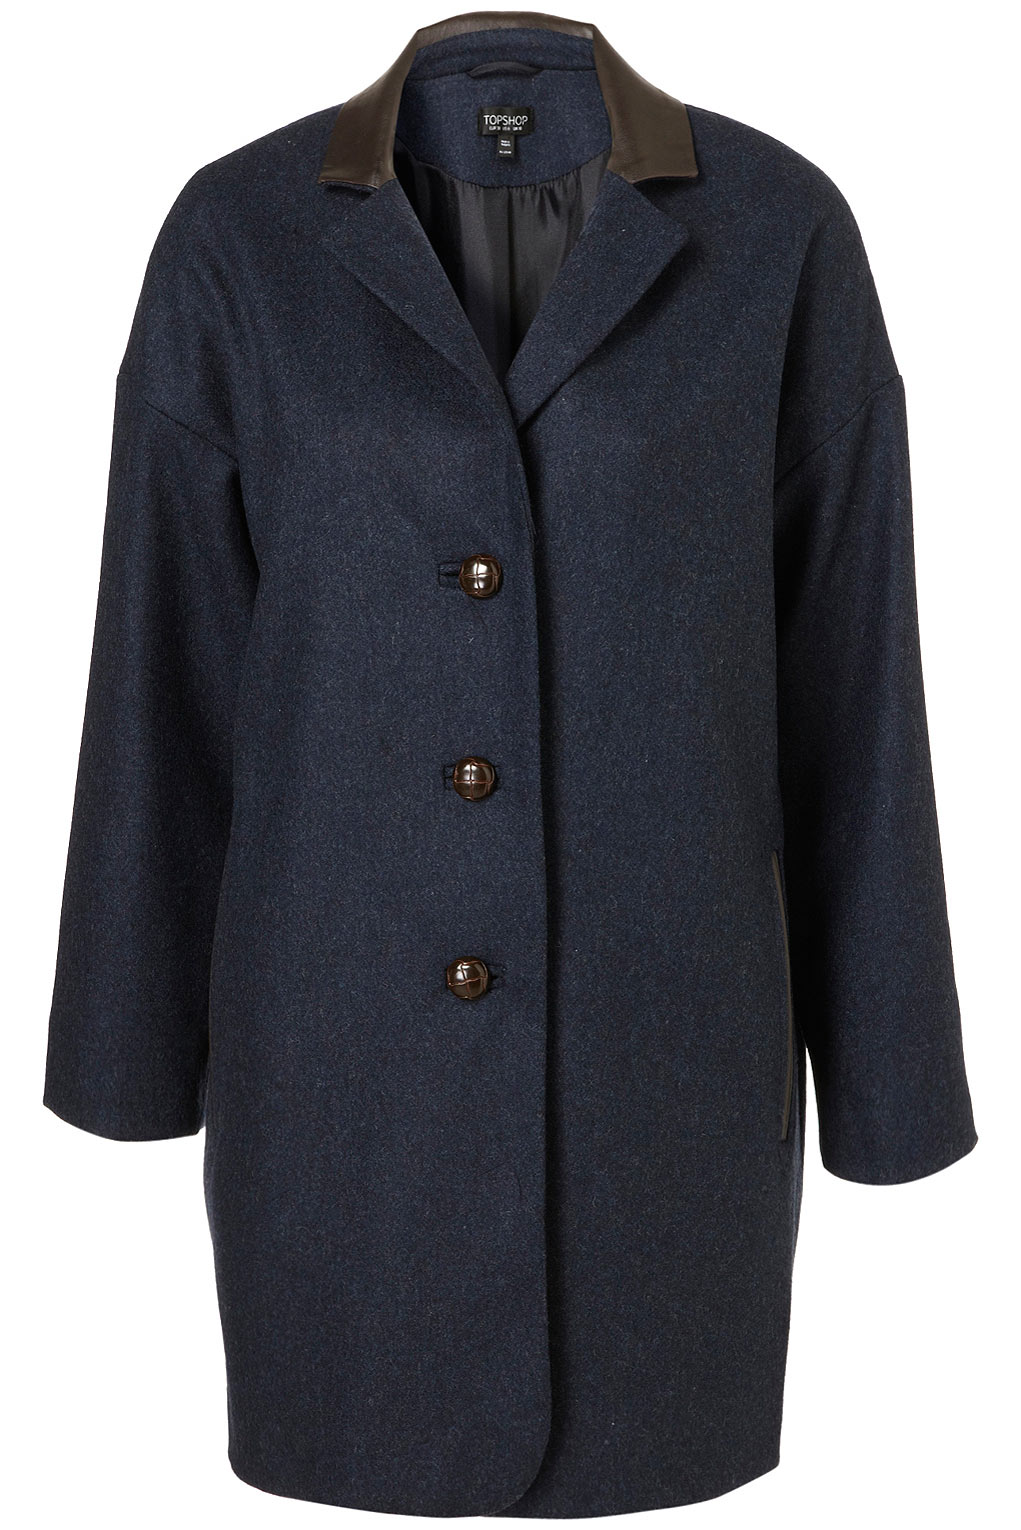 It has a casablanca blue material, long sleeves, is lined, notched collar, schoolboy style and a 2 button closure. In excellent condition. Autumn Winter Women Casual Boyfriend No Buckle Business Suit Jacket Blazer Coat.